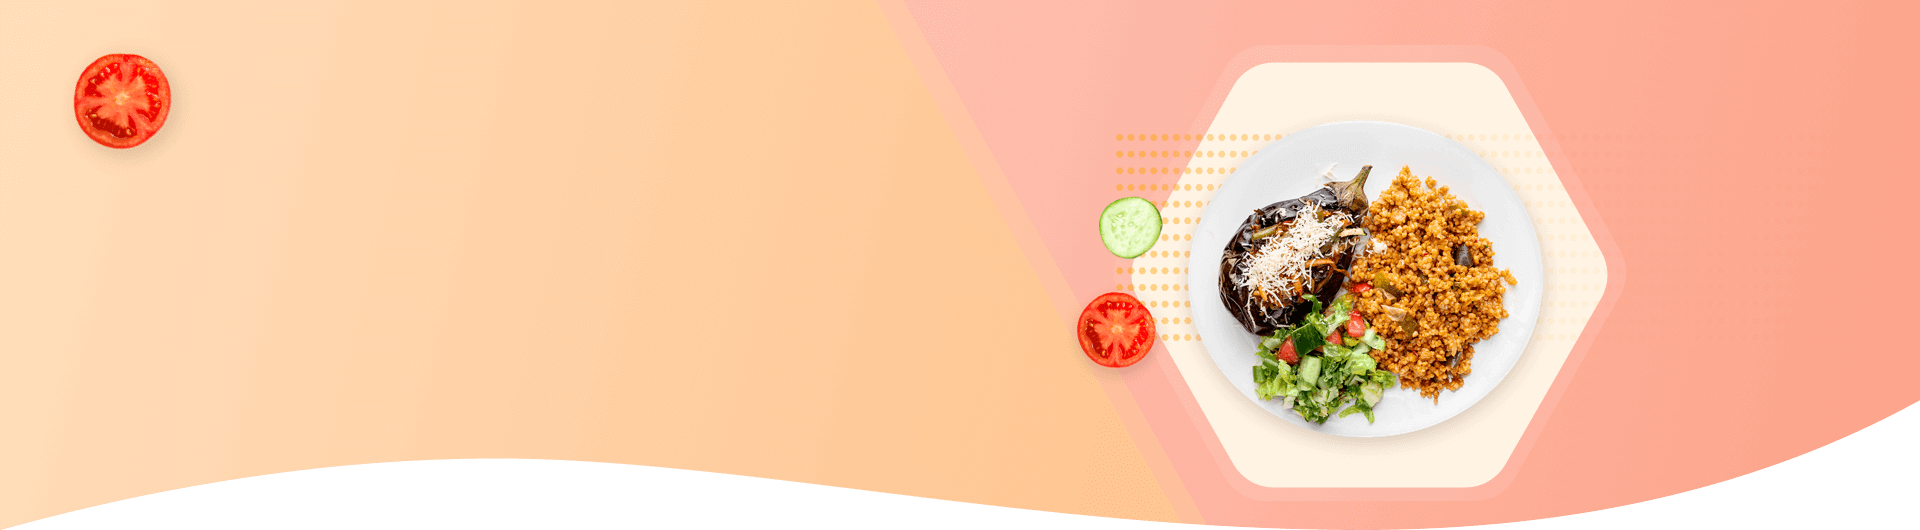 header_office catering 2.png